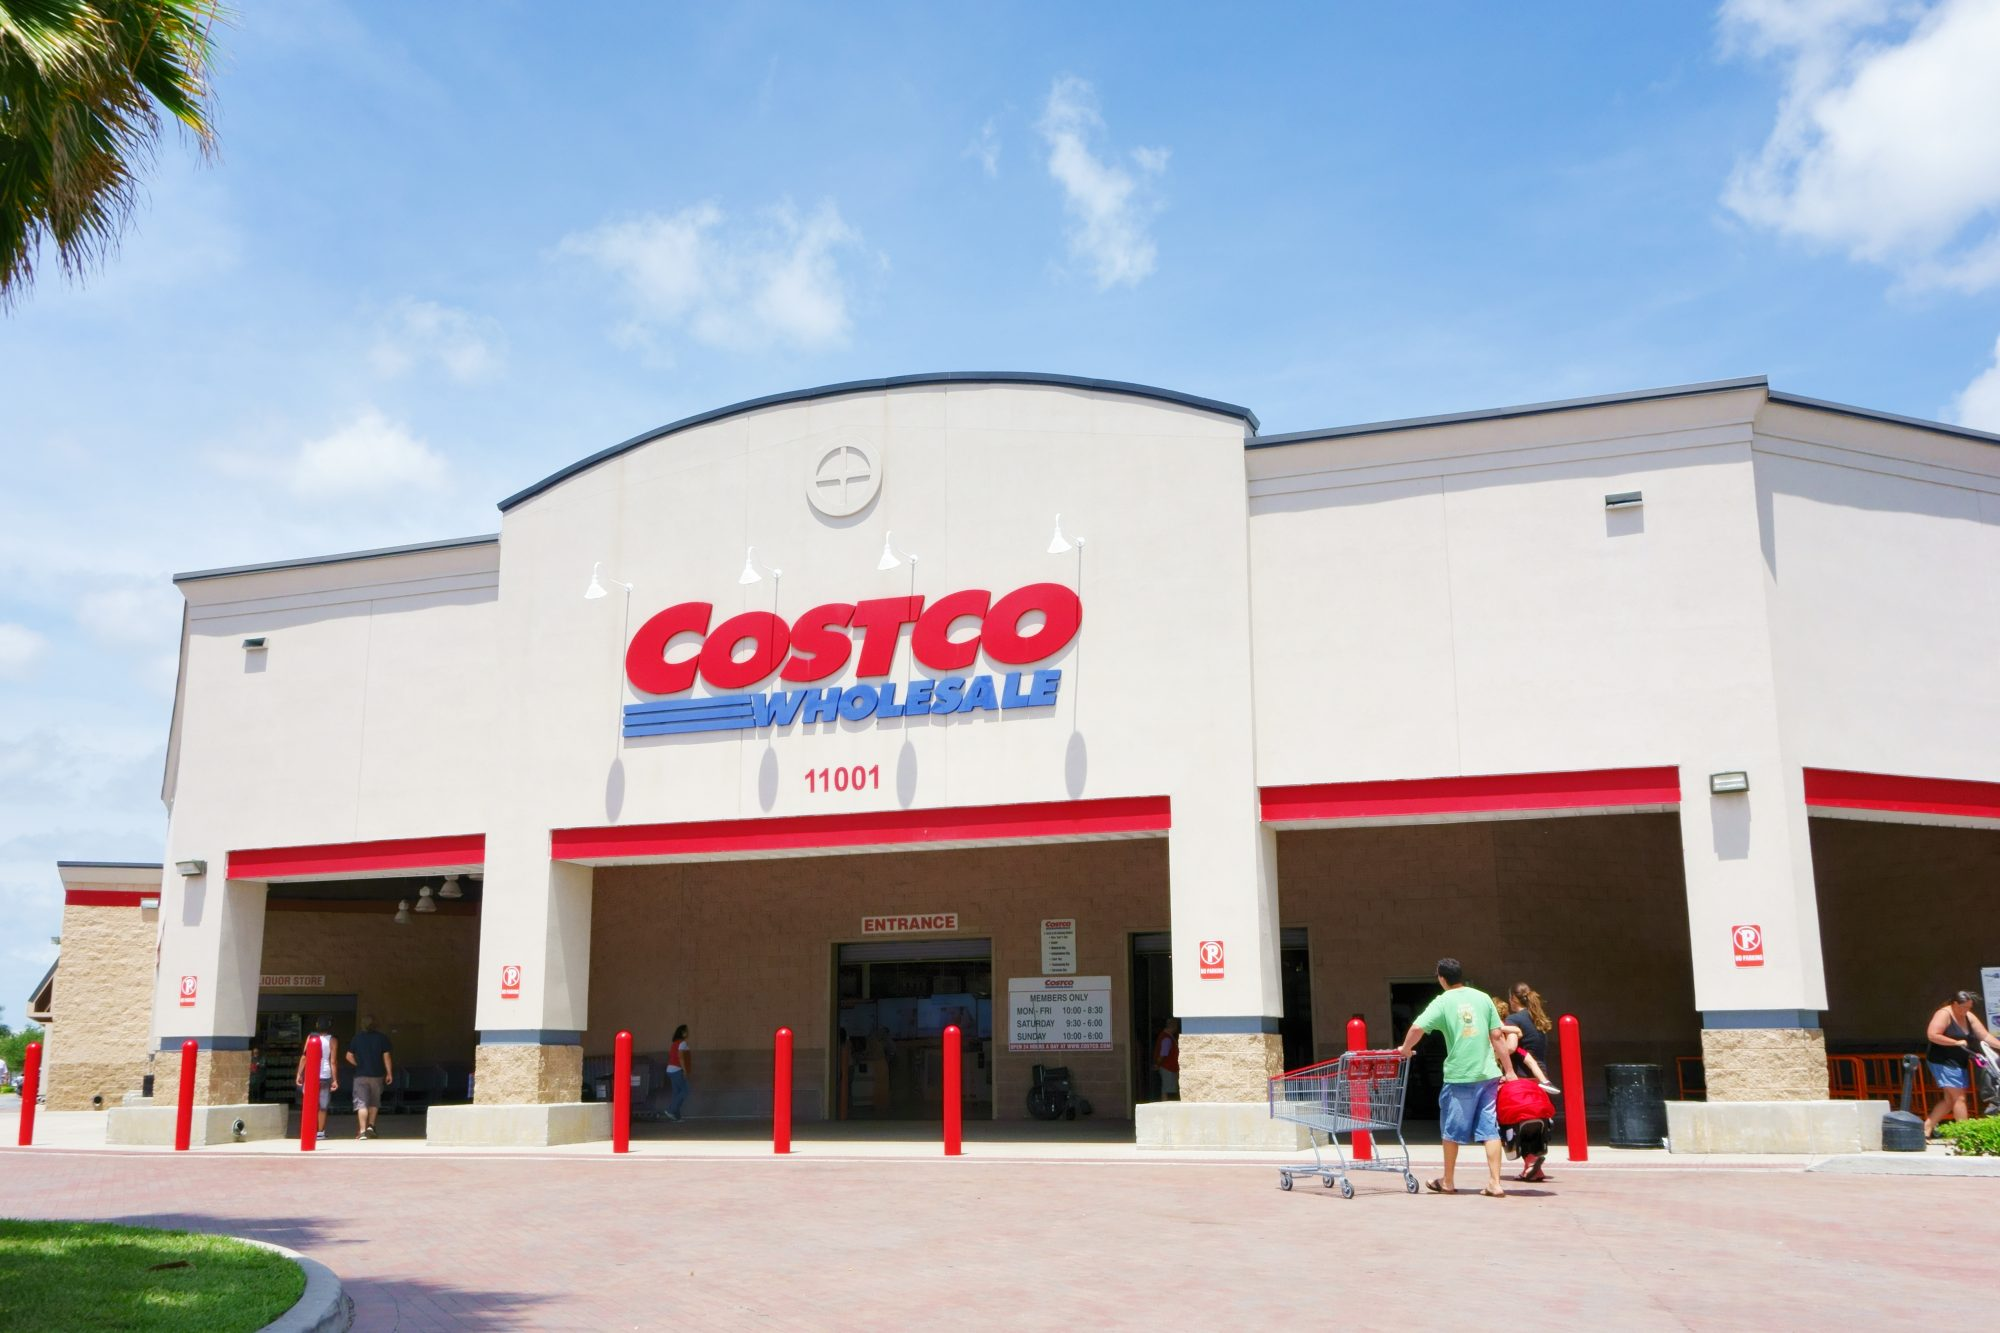 Costco Wholesale Exterior